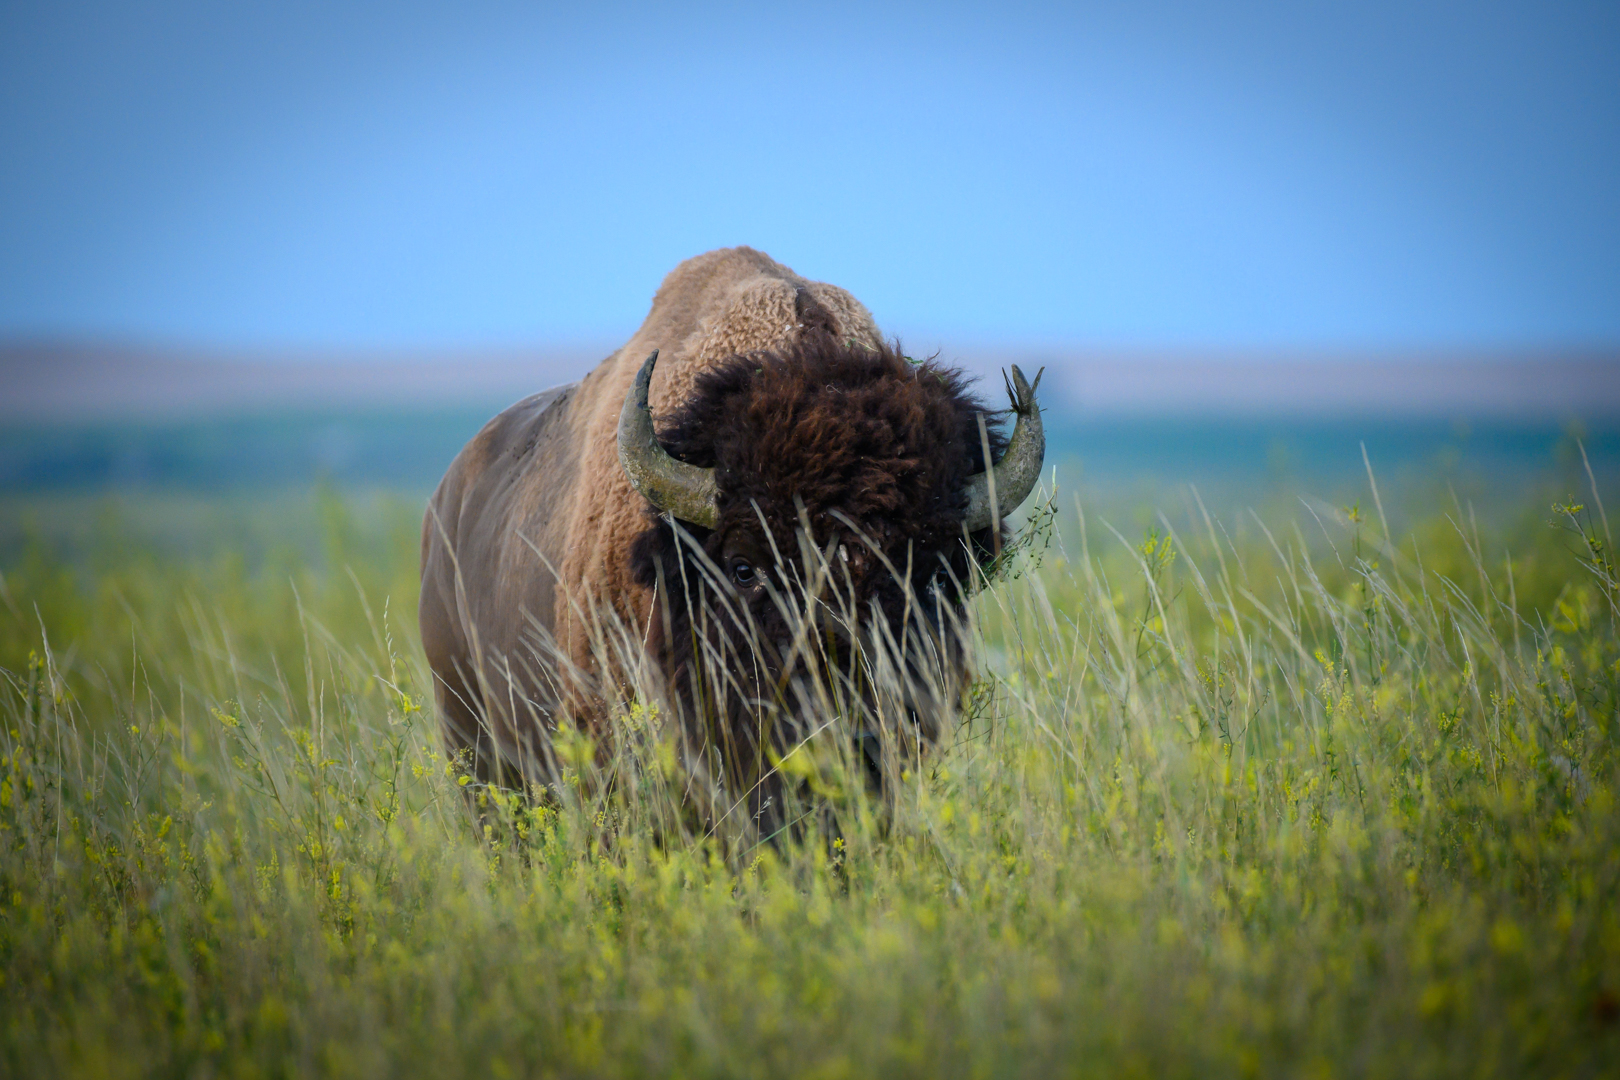 Blades of Grass in Front of Bison Face